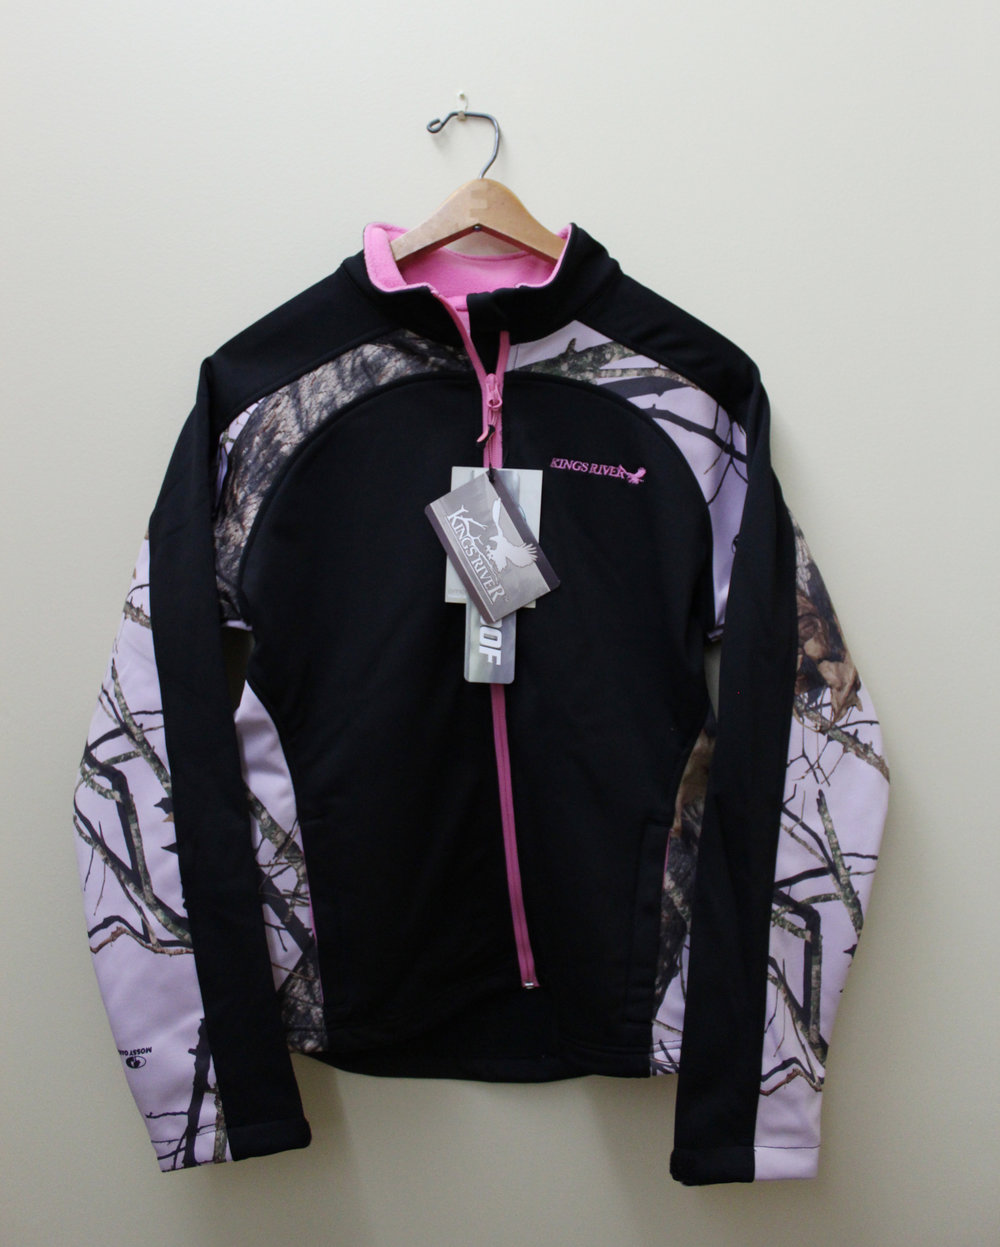 Mahco Inc. -Women's Performance Softshell Jacket with pink camo accents - S thru XL - Value $280